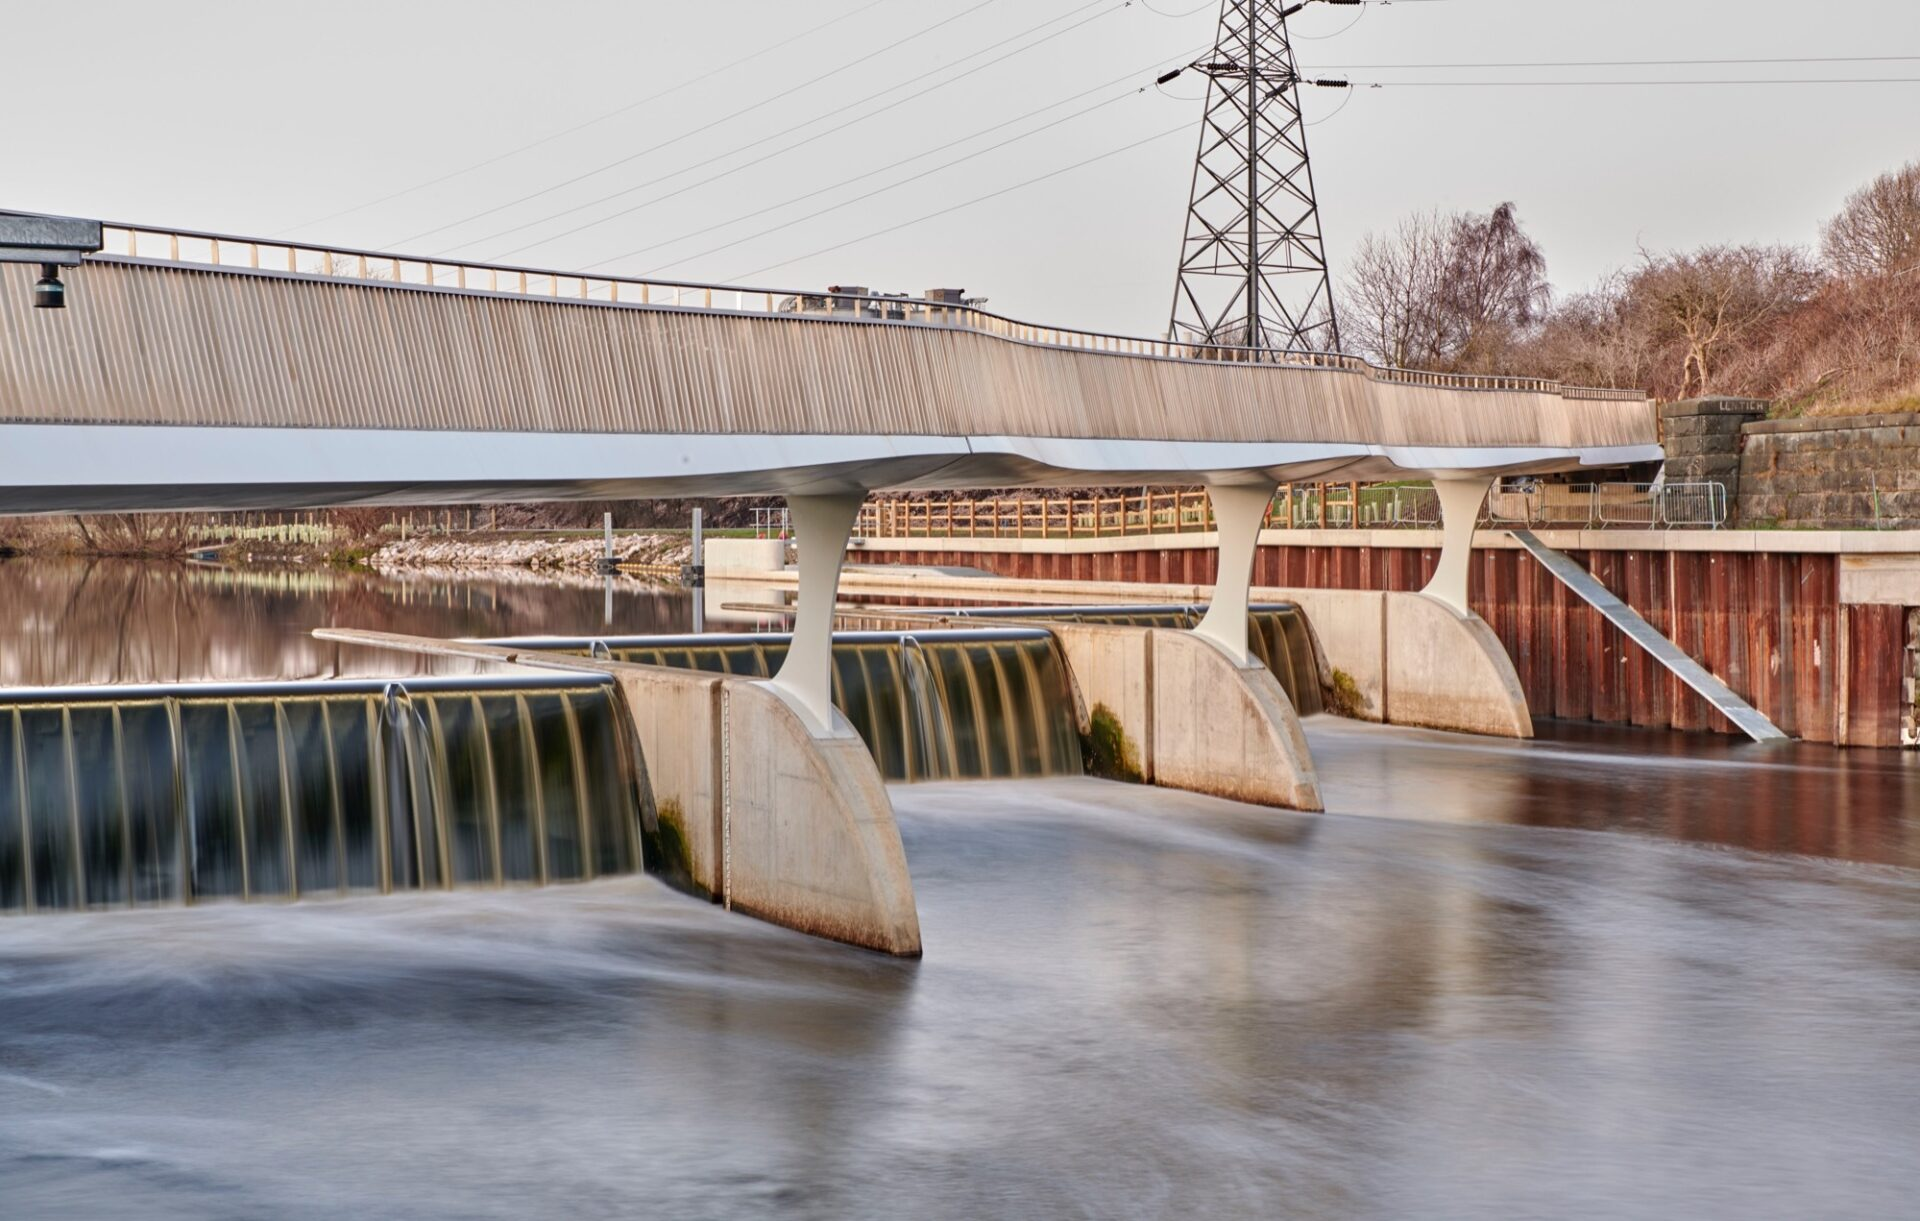 Knostrop foot and cycle bridge with water running below